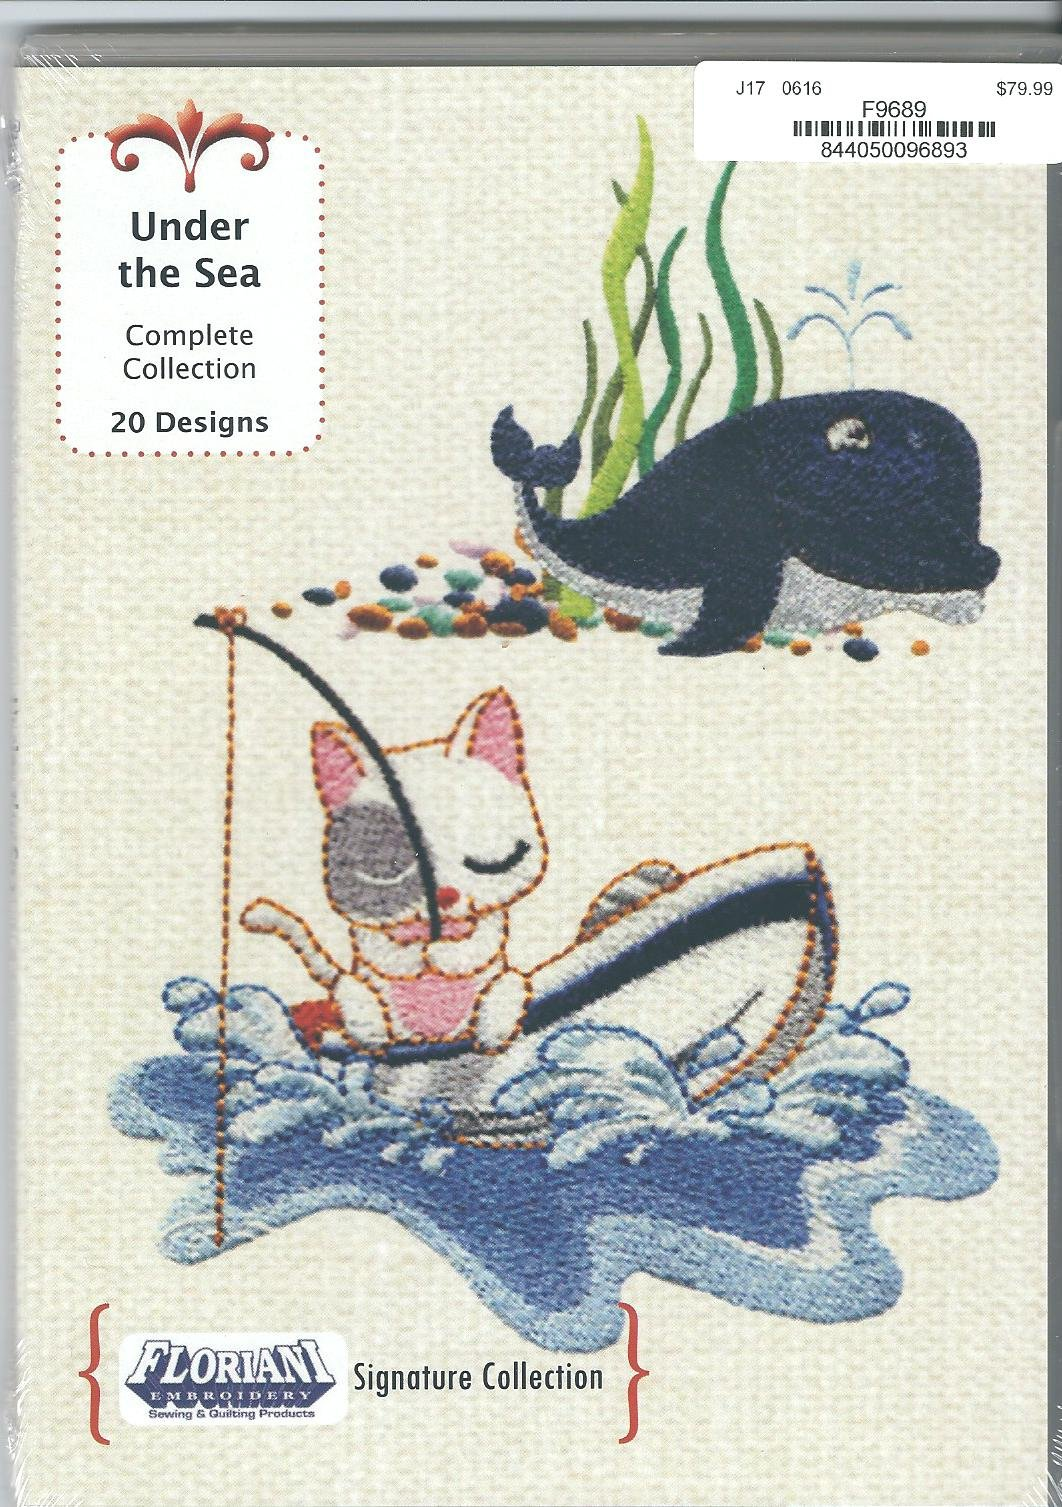 Floriani Embroidery Design Collection Under the Sea